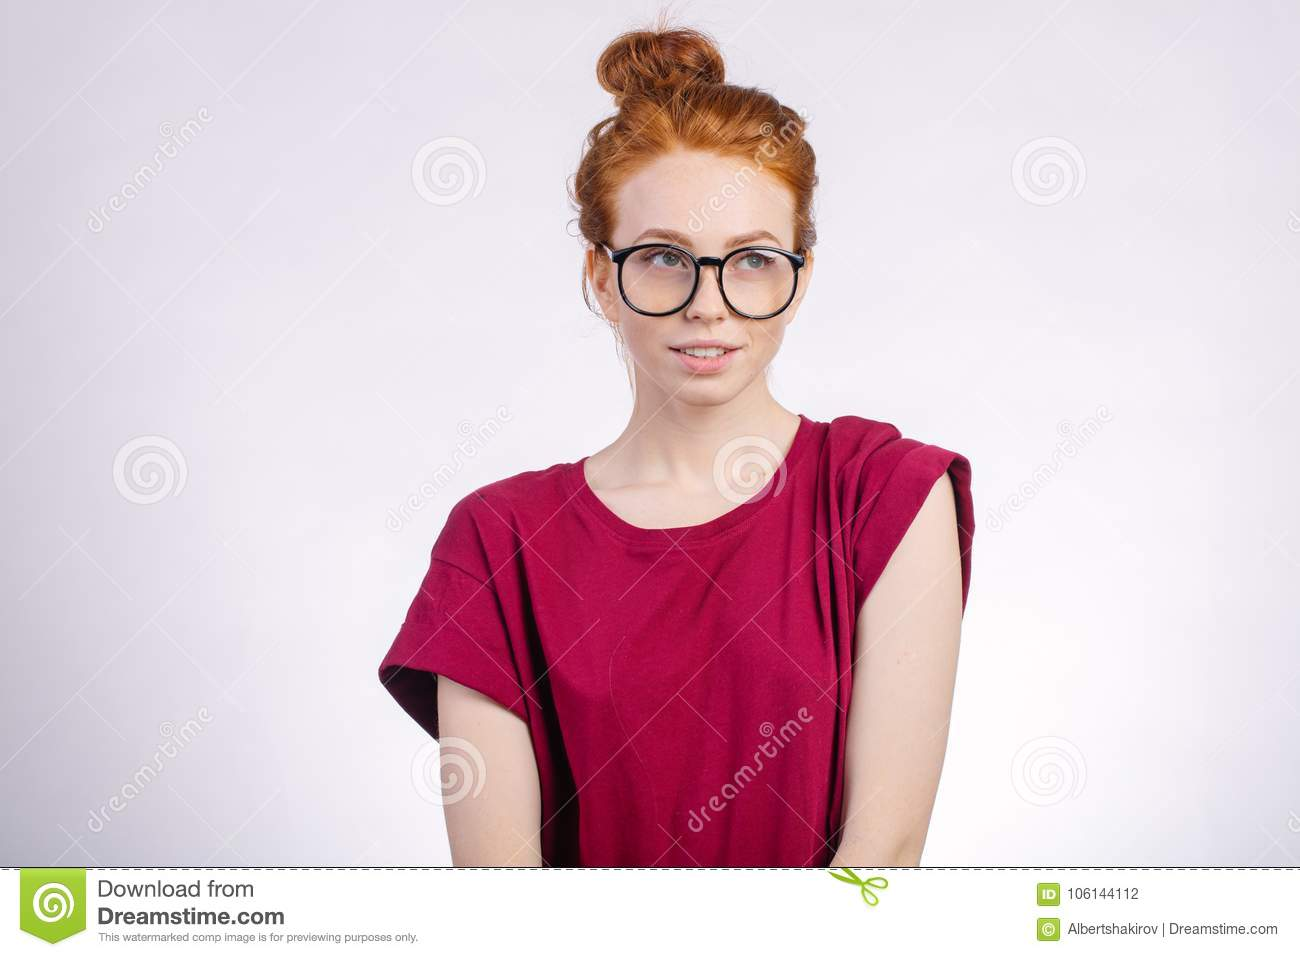 glasses Cute redhead wearing